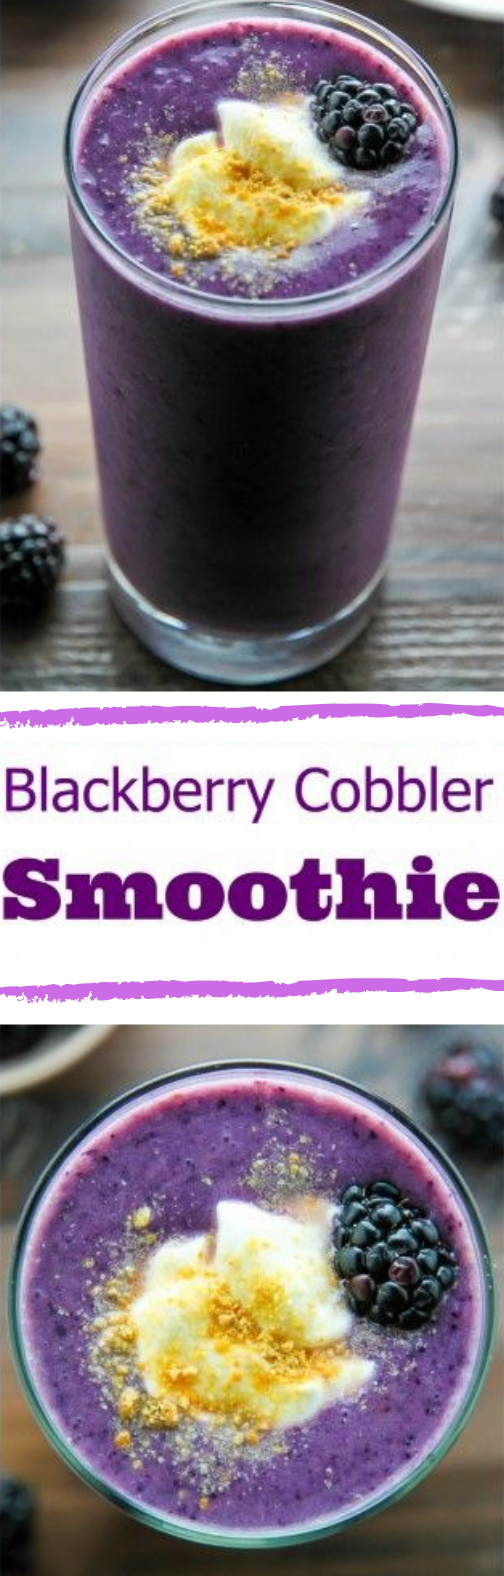 Blackberry Cobbler Smoothie #Blackberry #Smoothie